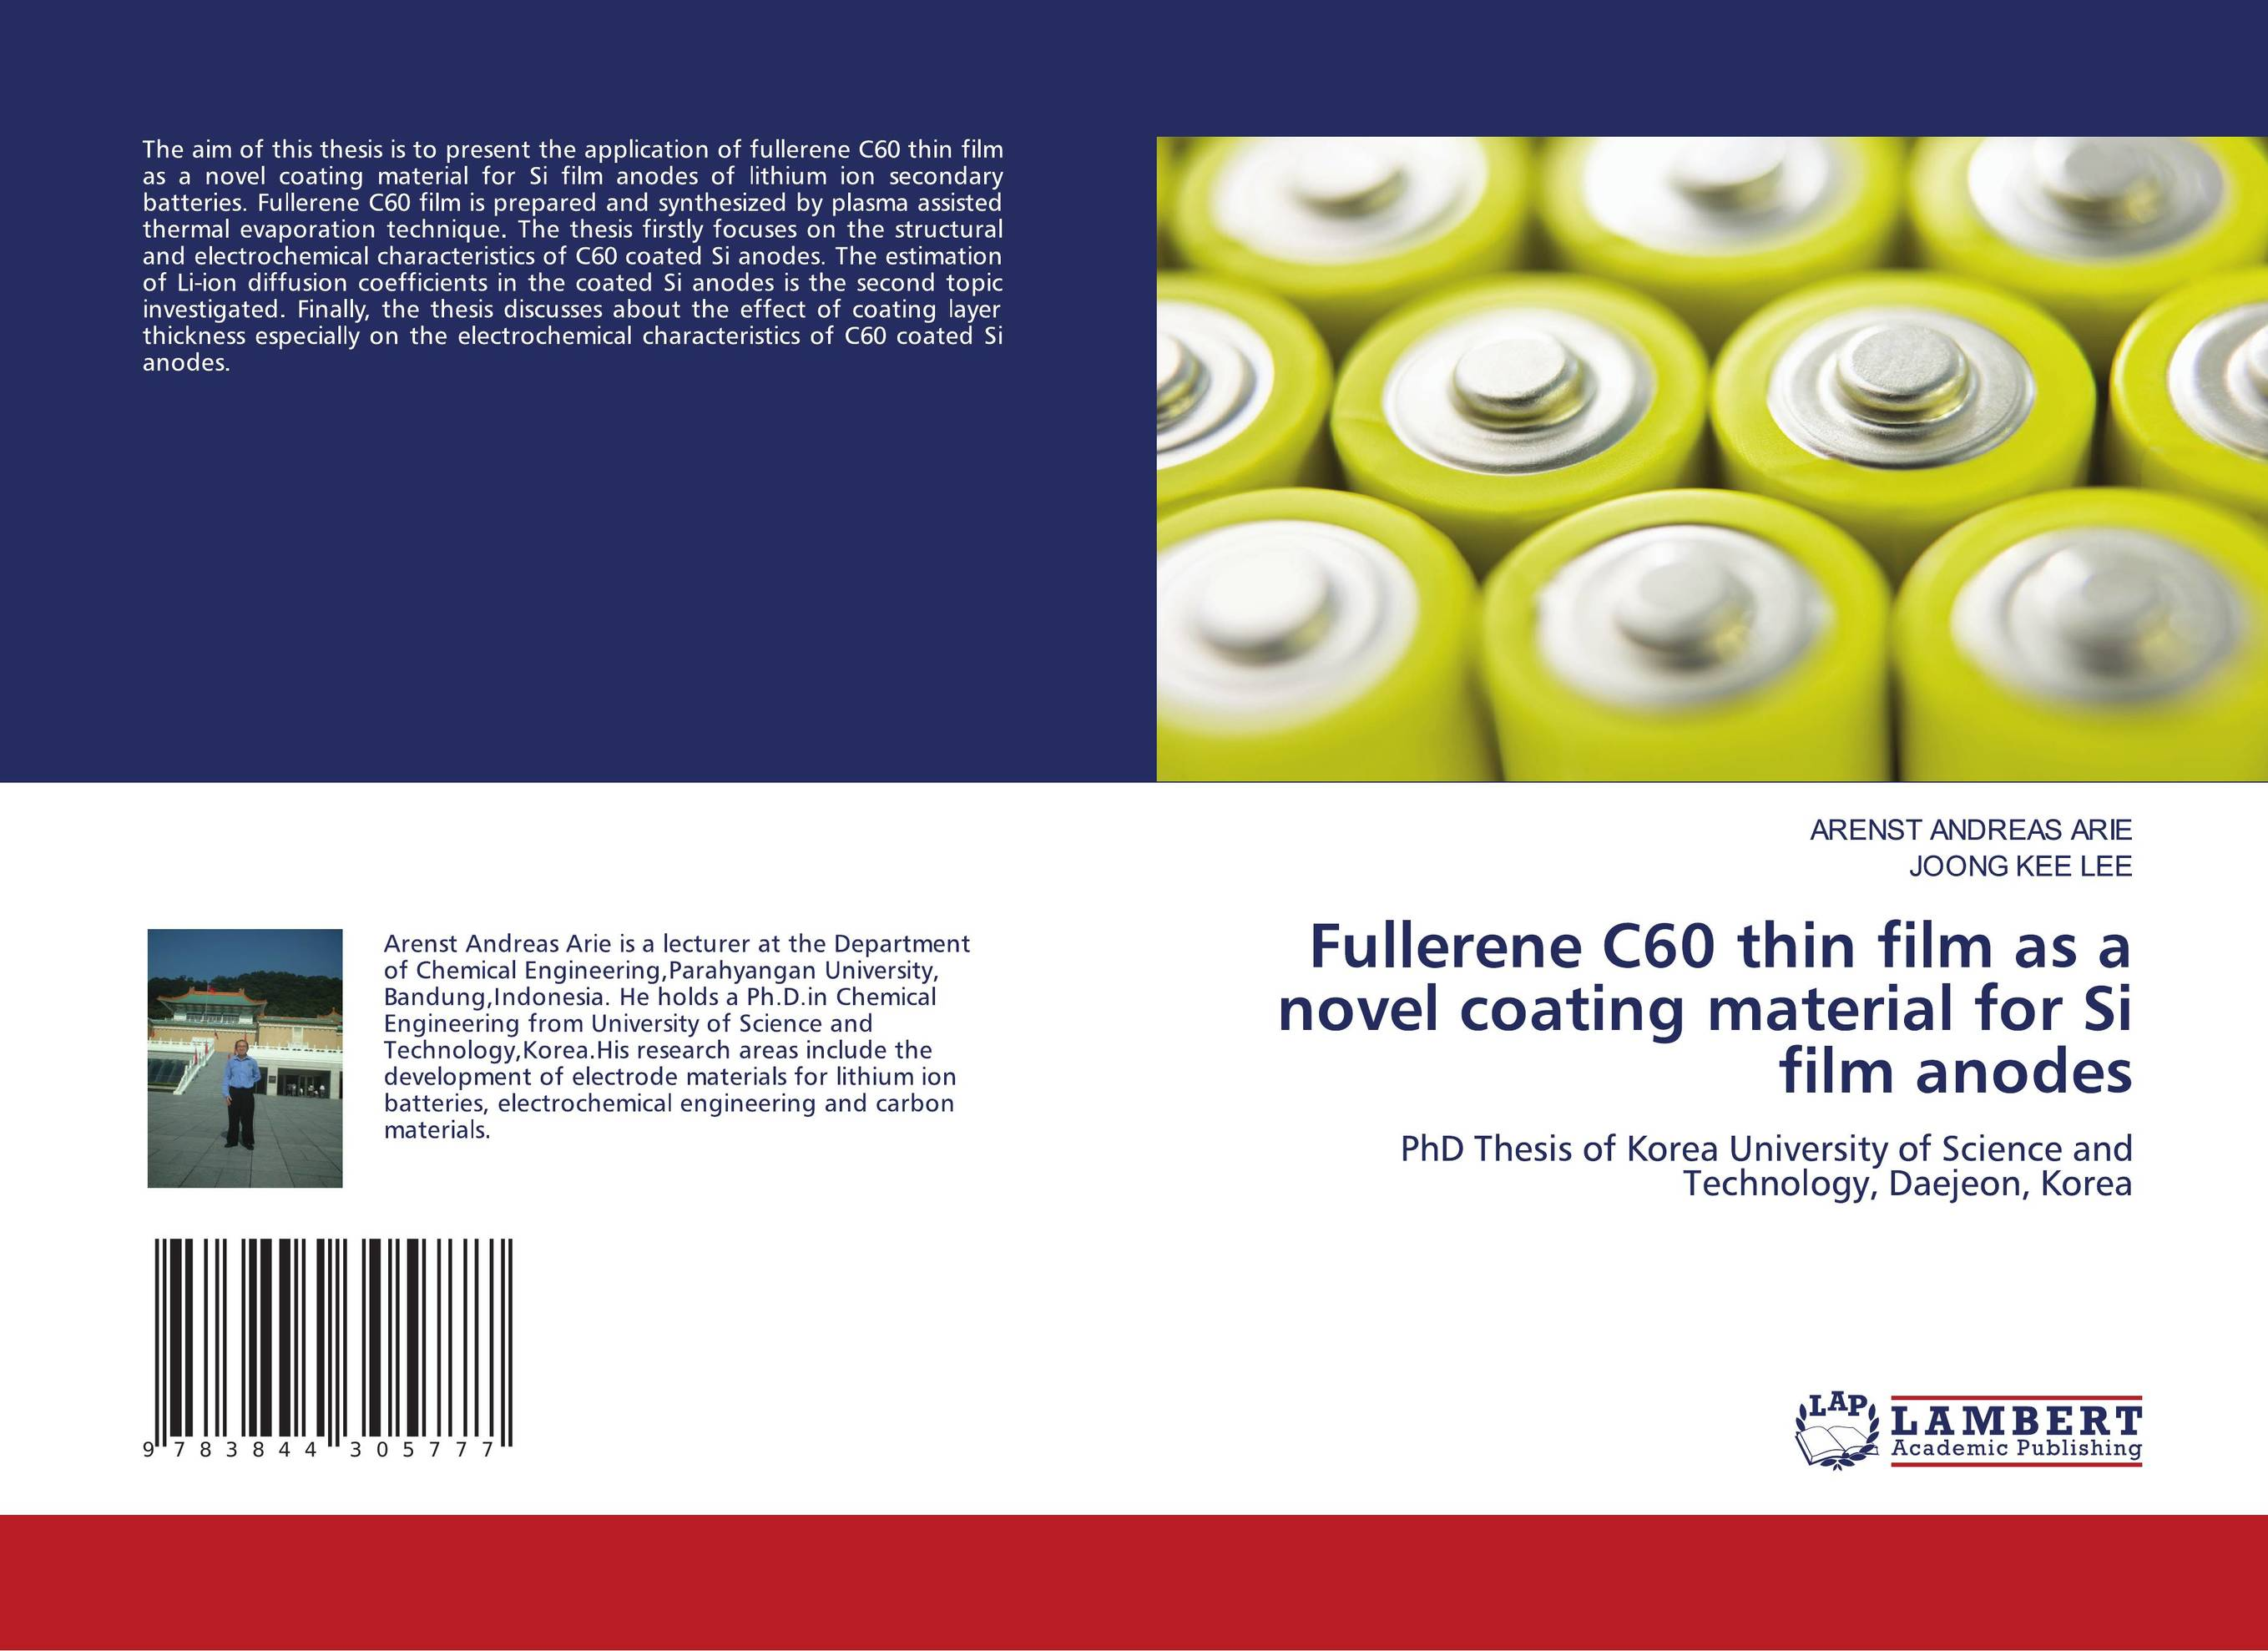 thesis on znse thin films Phd thesis on znse thin films schottky barriers by sumbit chaliha at onreadcom - the best online ebook storage download and read online for free phd thesis on znse.